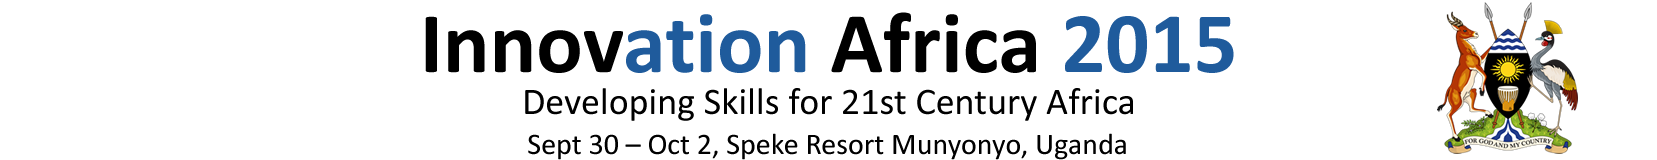 30 Sept - 2 Oct, Lake Victoria, Uganda - Developing Skills for 21st Century Africa